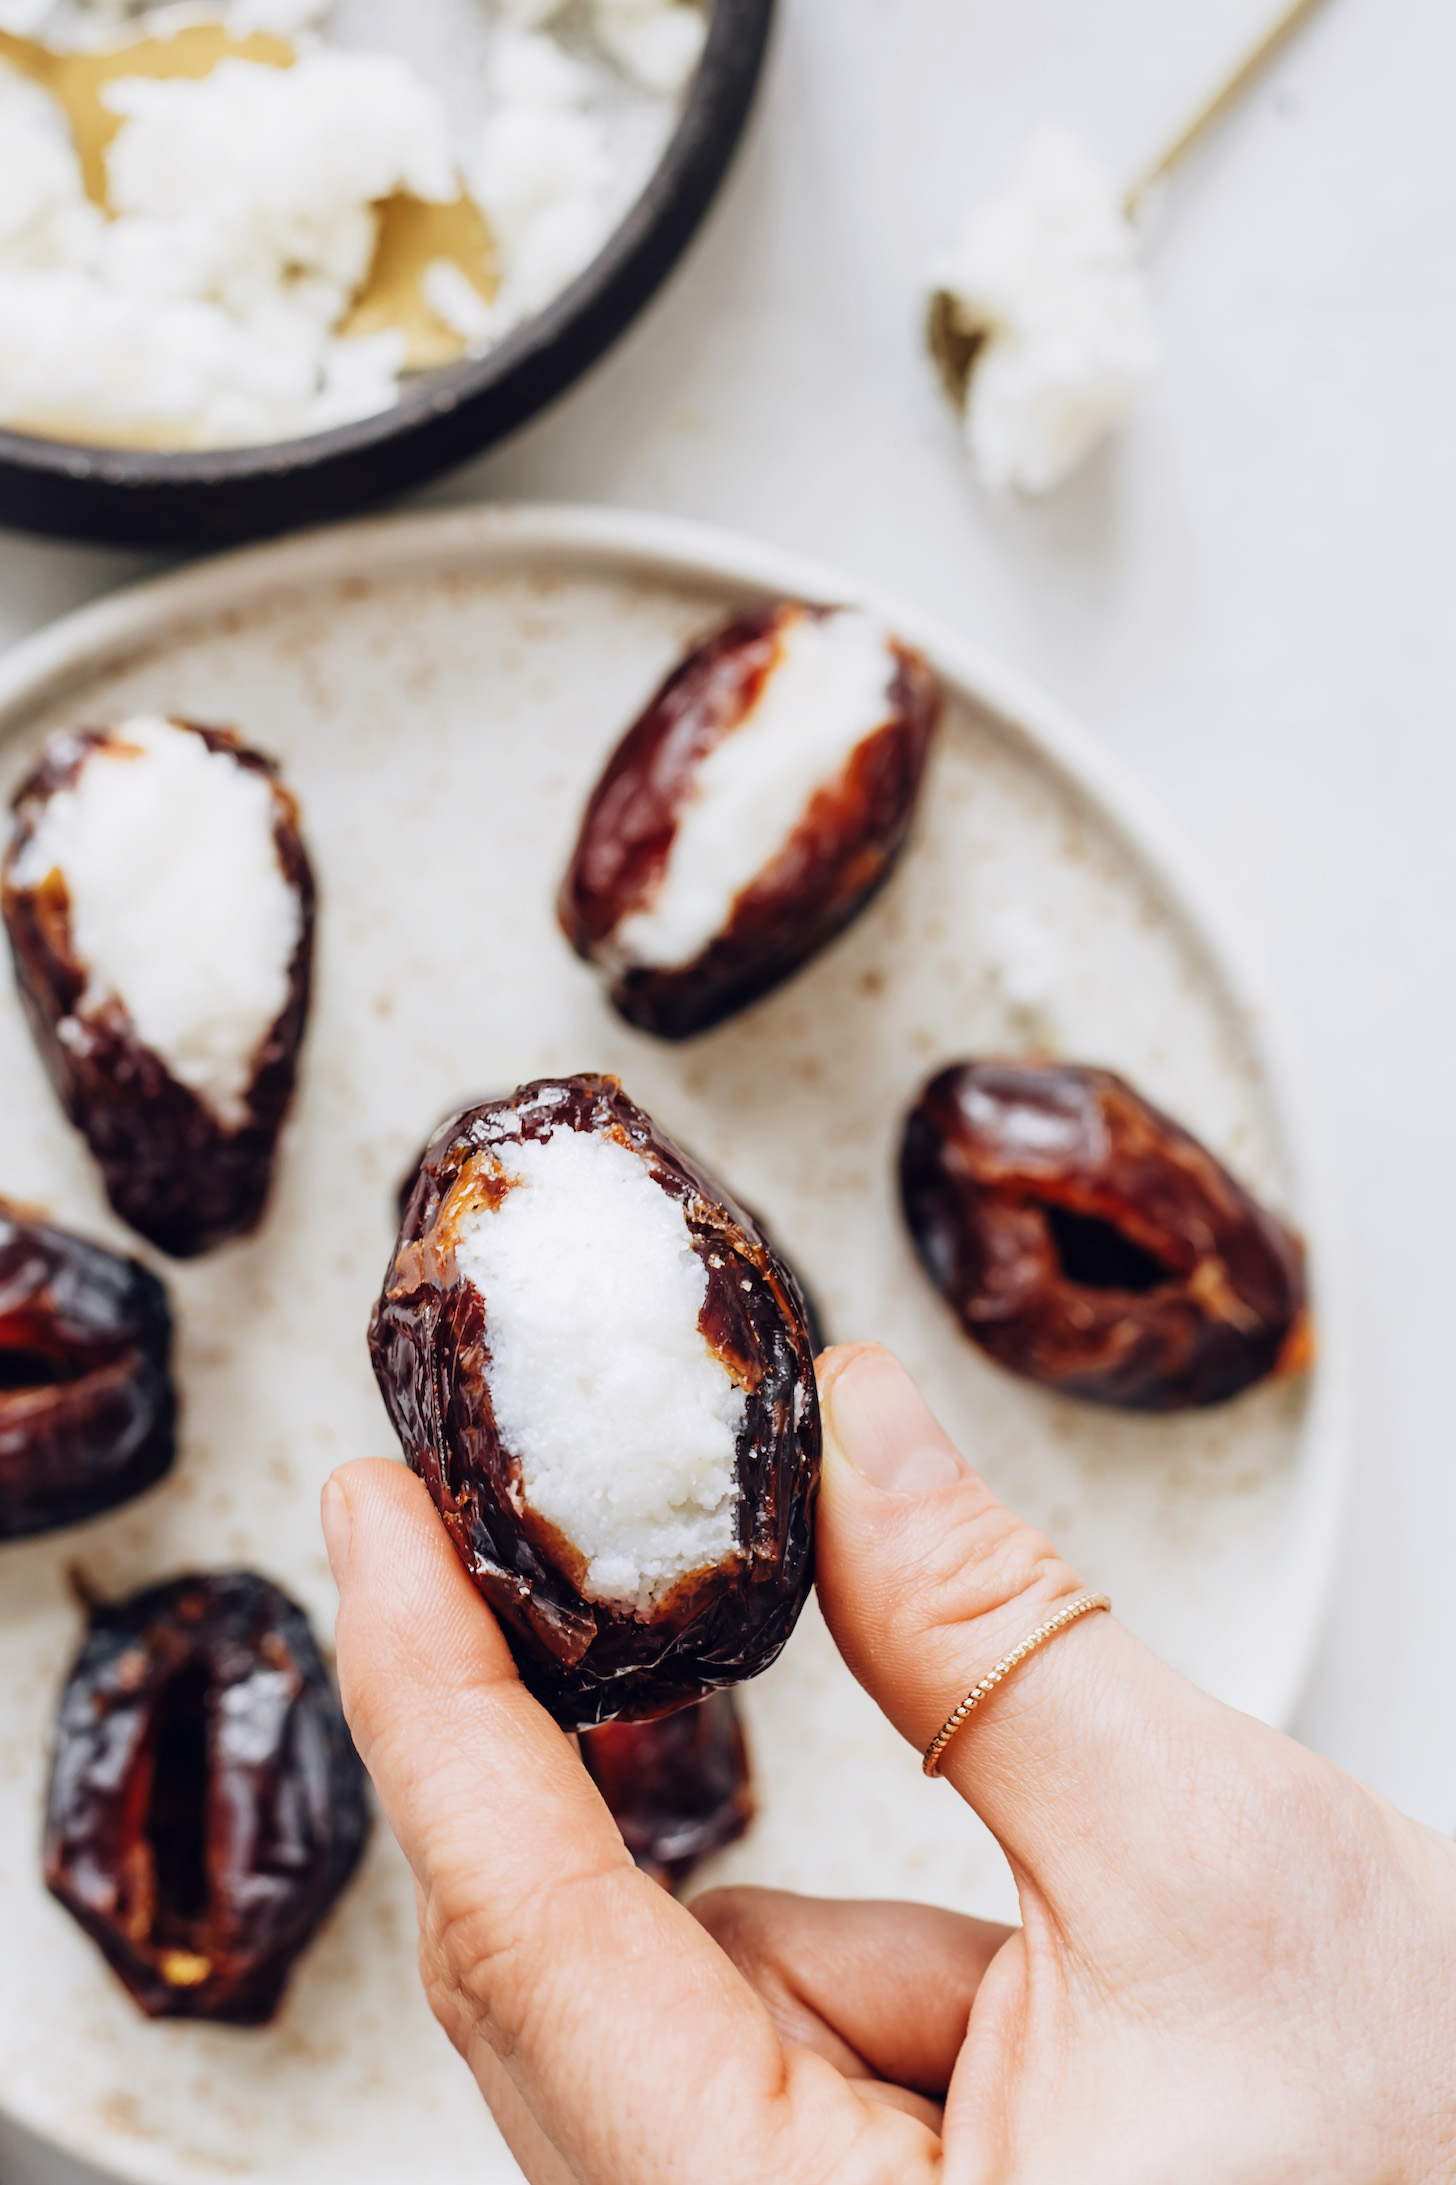 Holding a medjool date stuffed with coconut butter